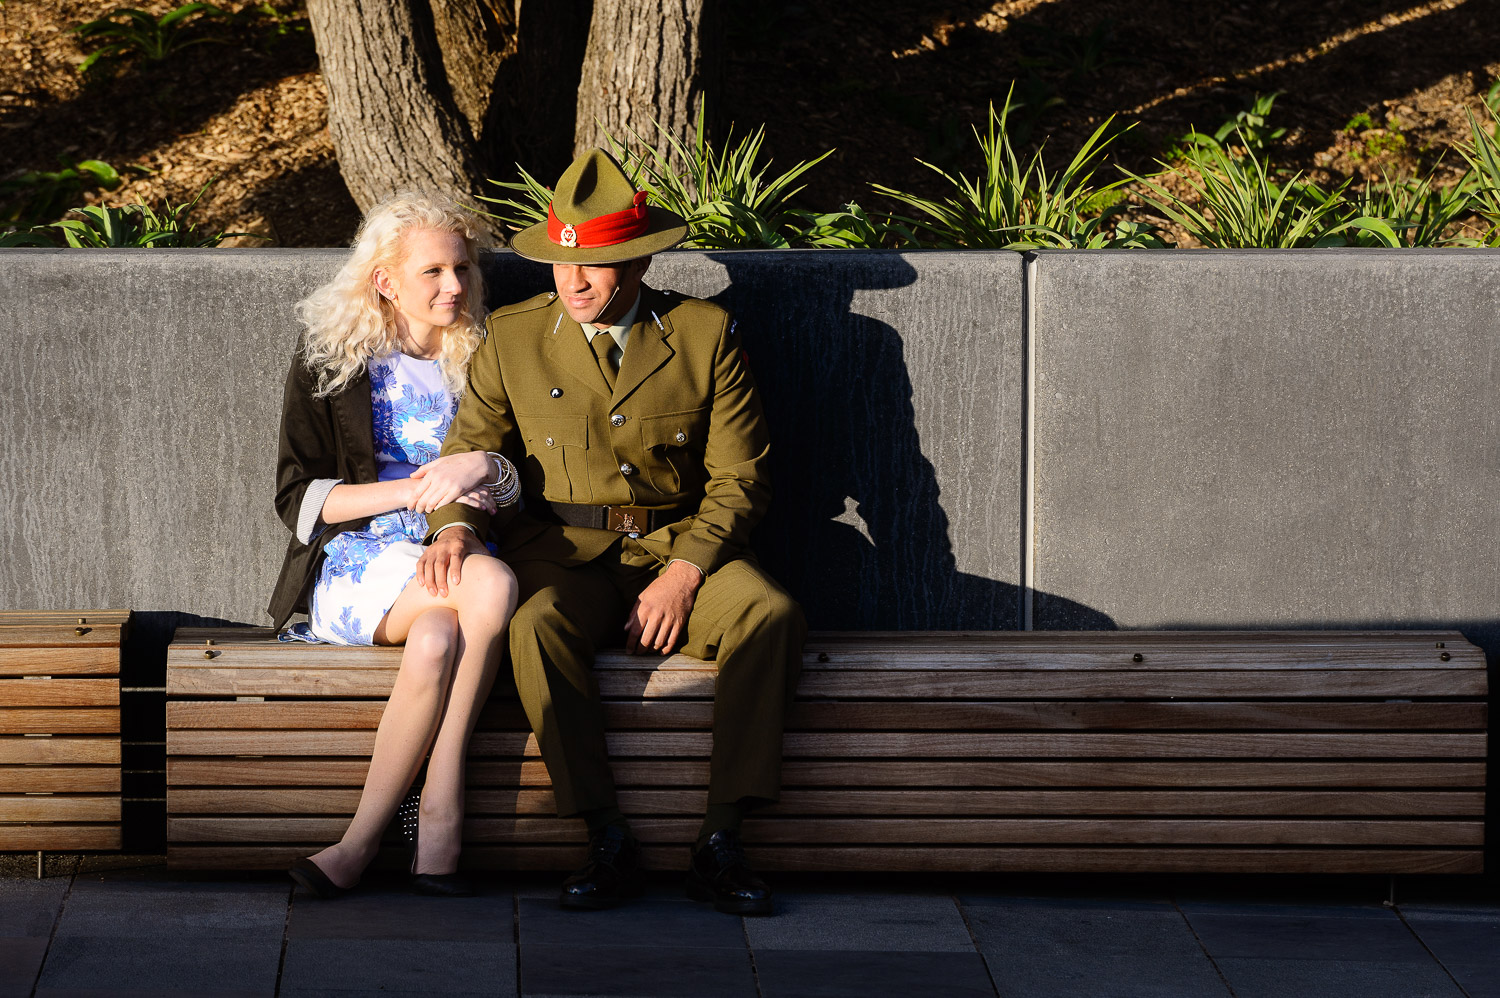 soldier-and-girlfriend-on-anzac-day.jpg